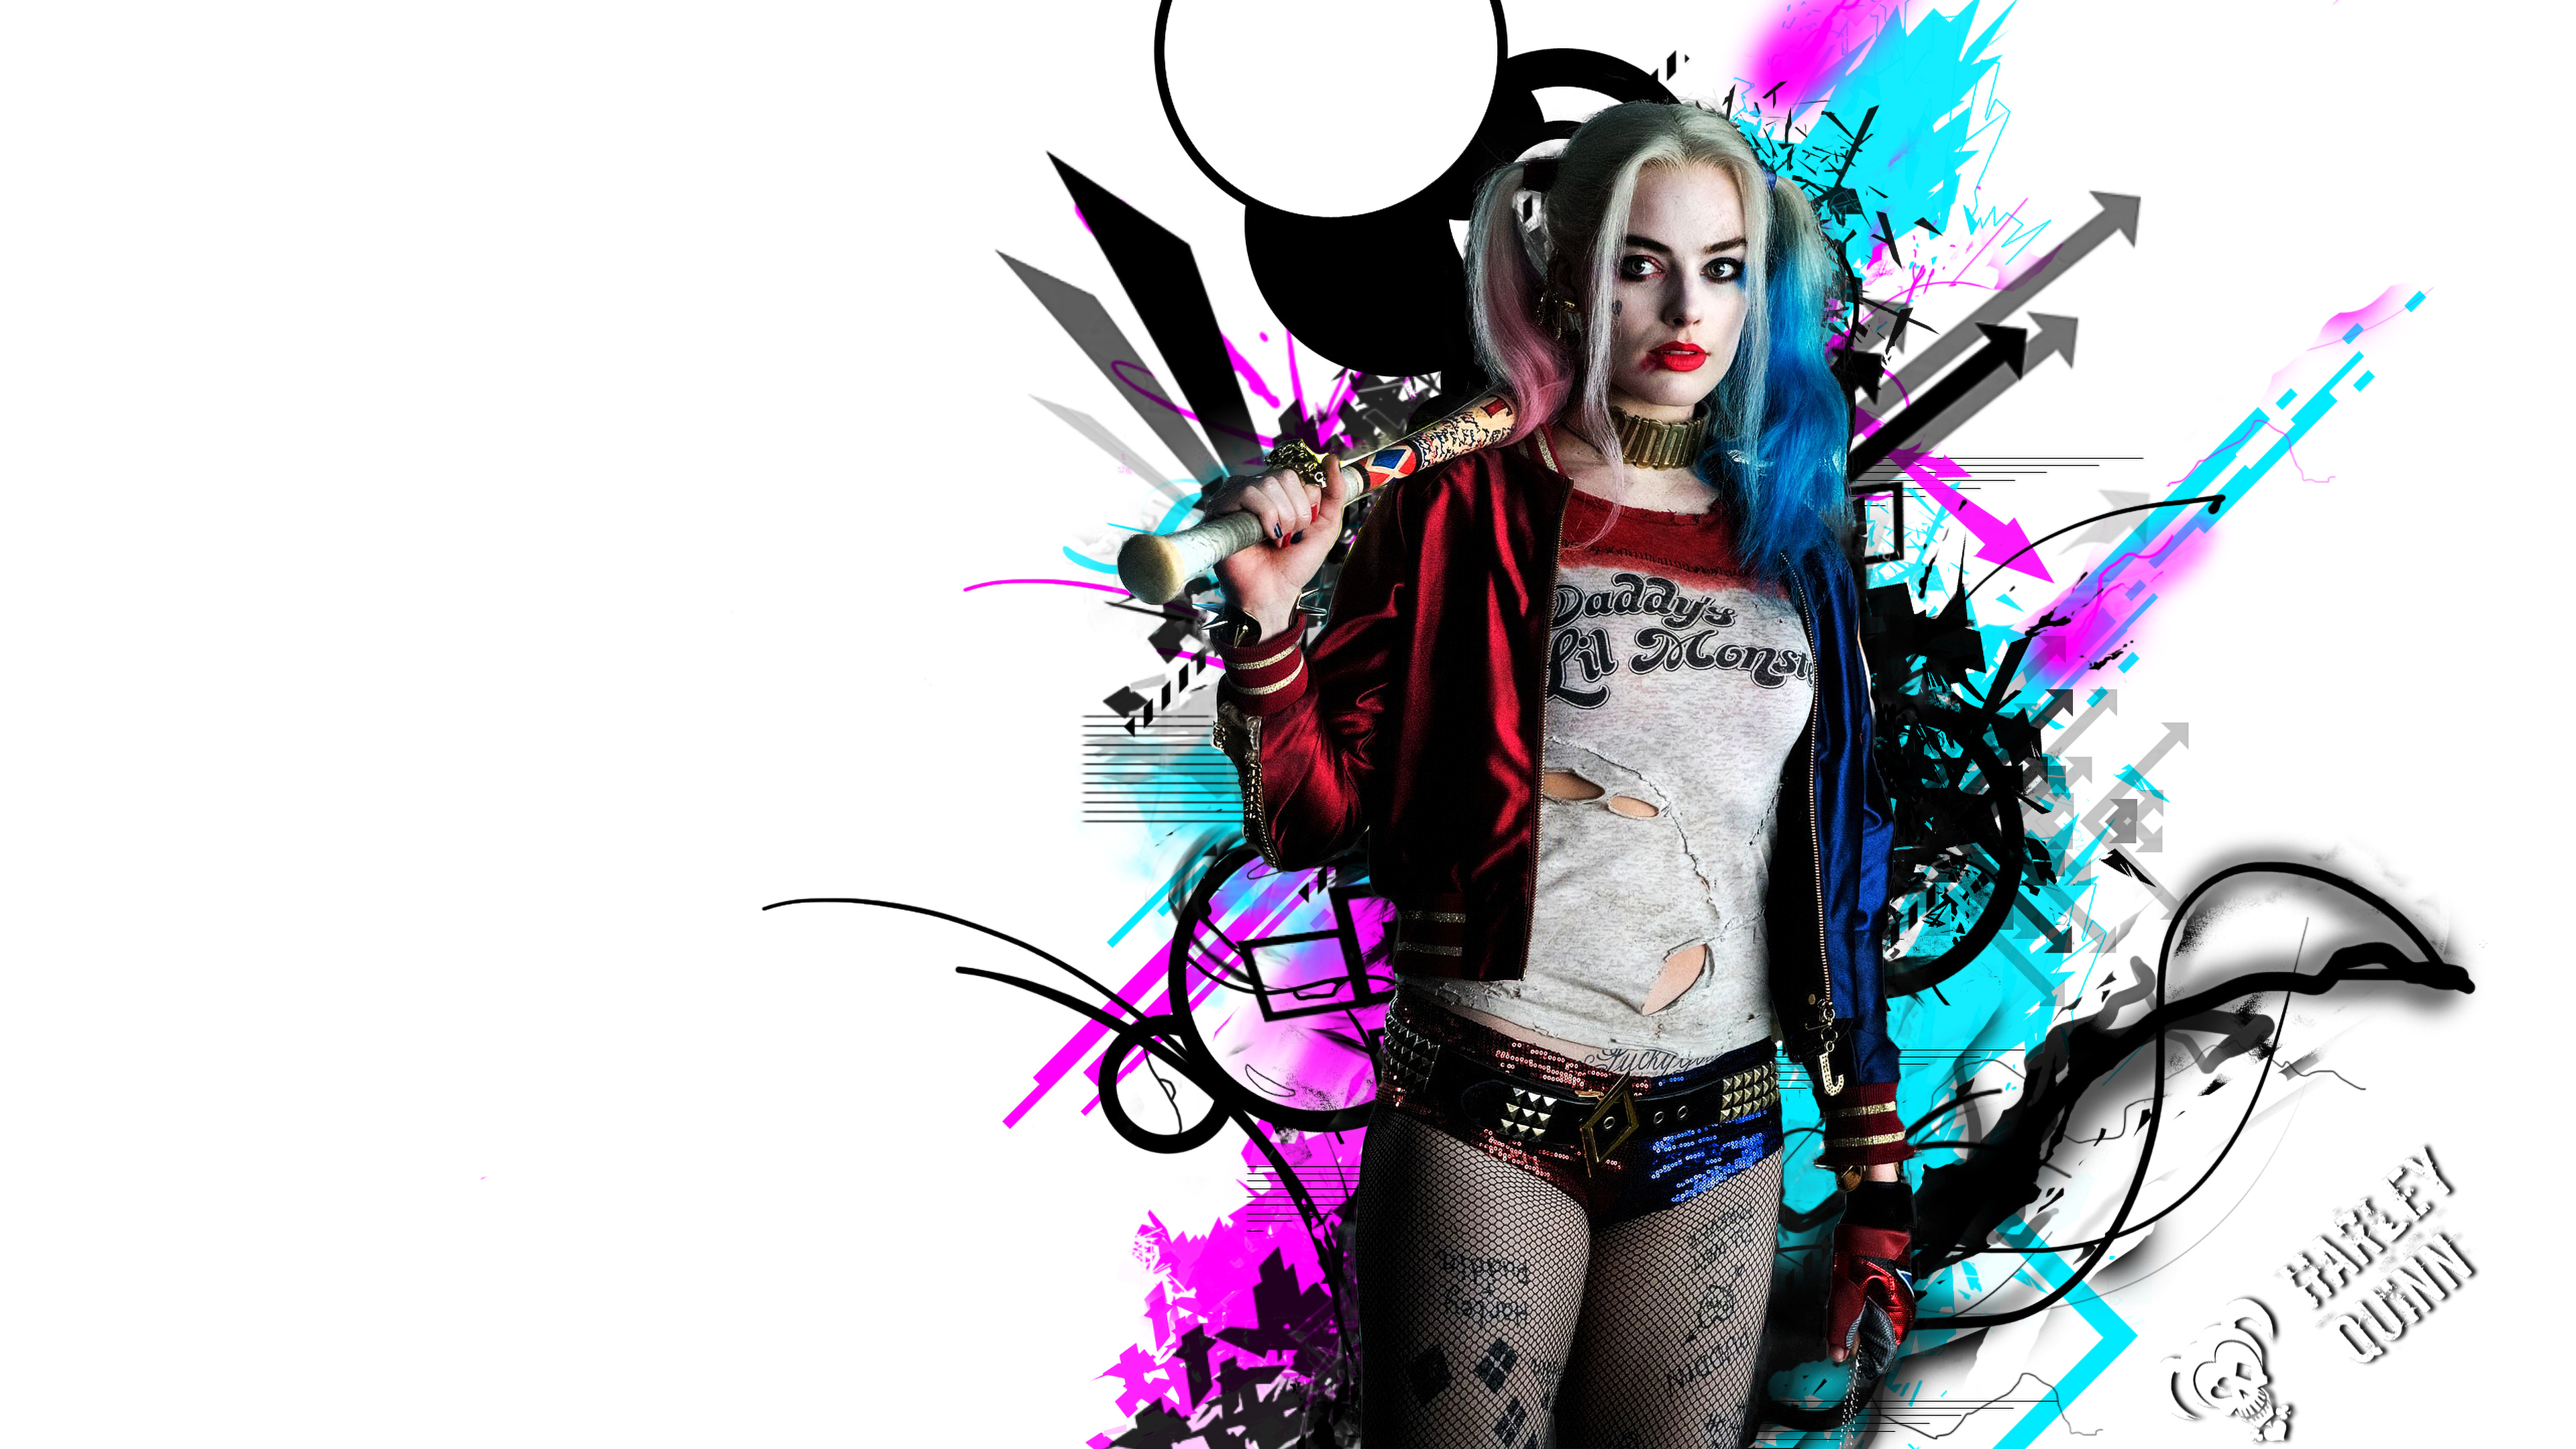 Harley Quinn 4k Hd Wallpapers: Harley Quinn Suicide Squad Red Blue 4K Wallpaper